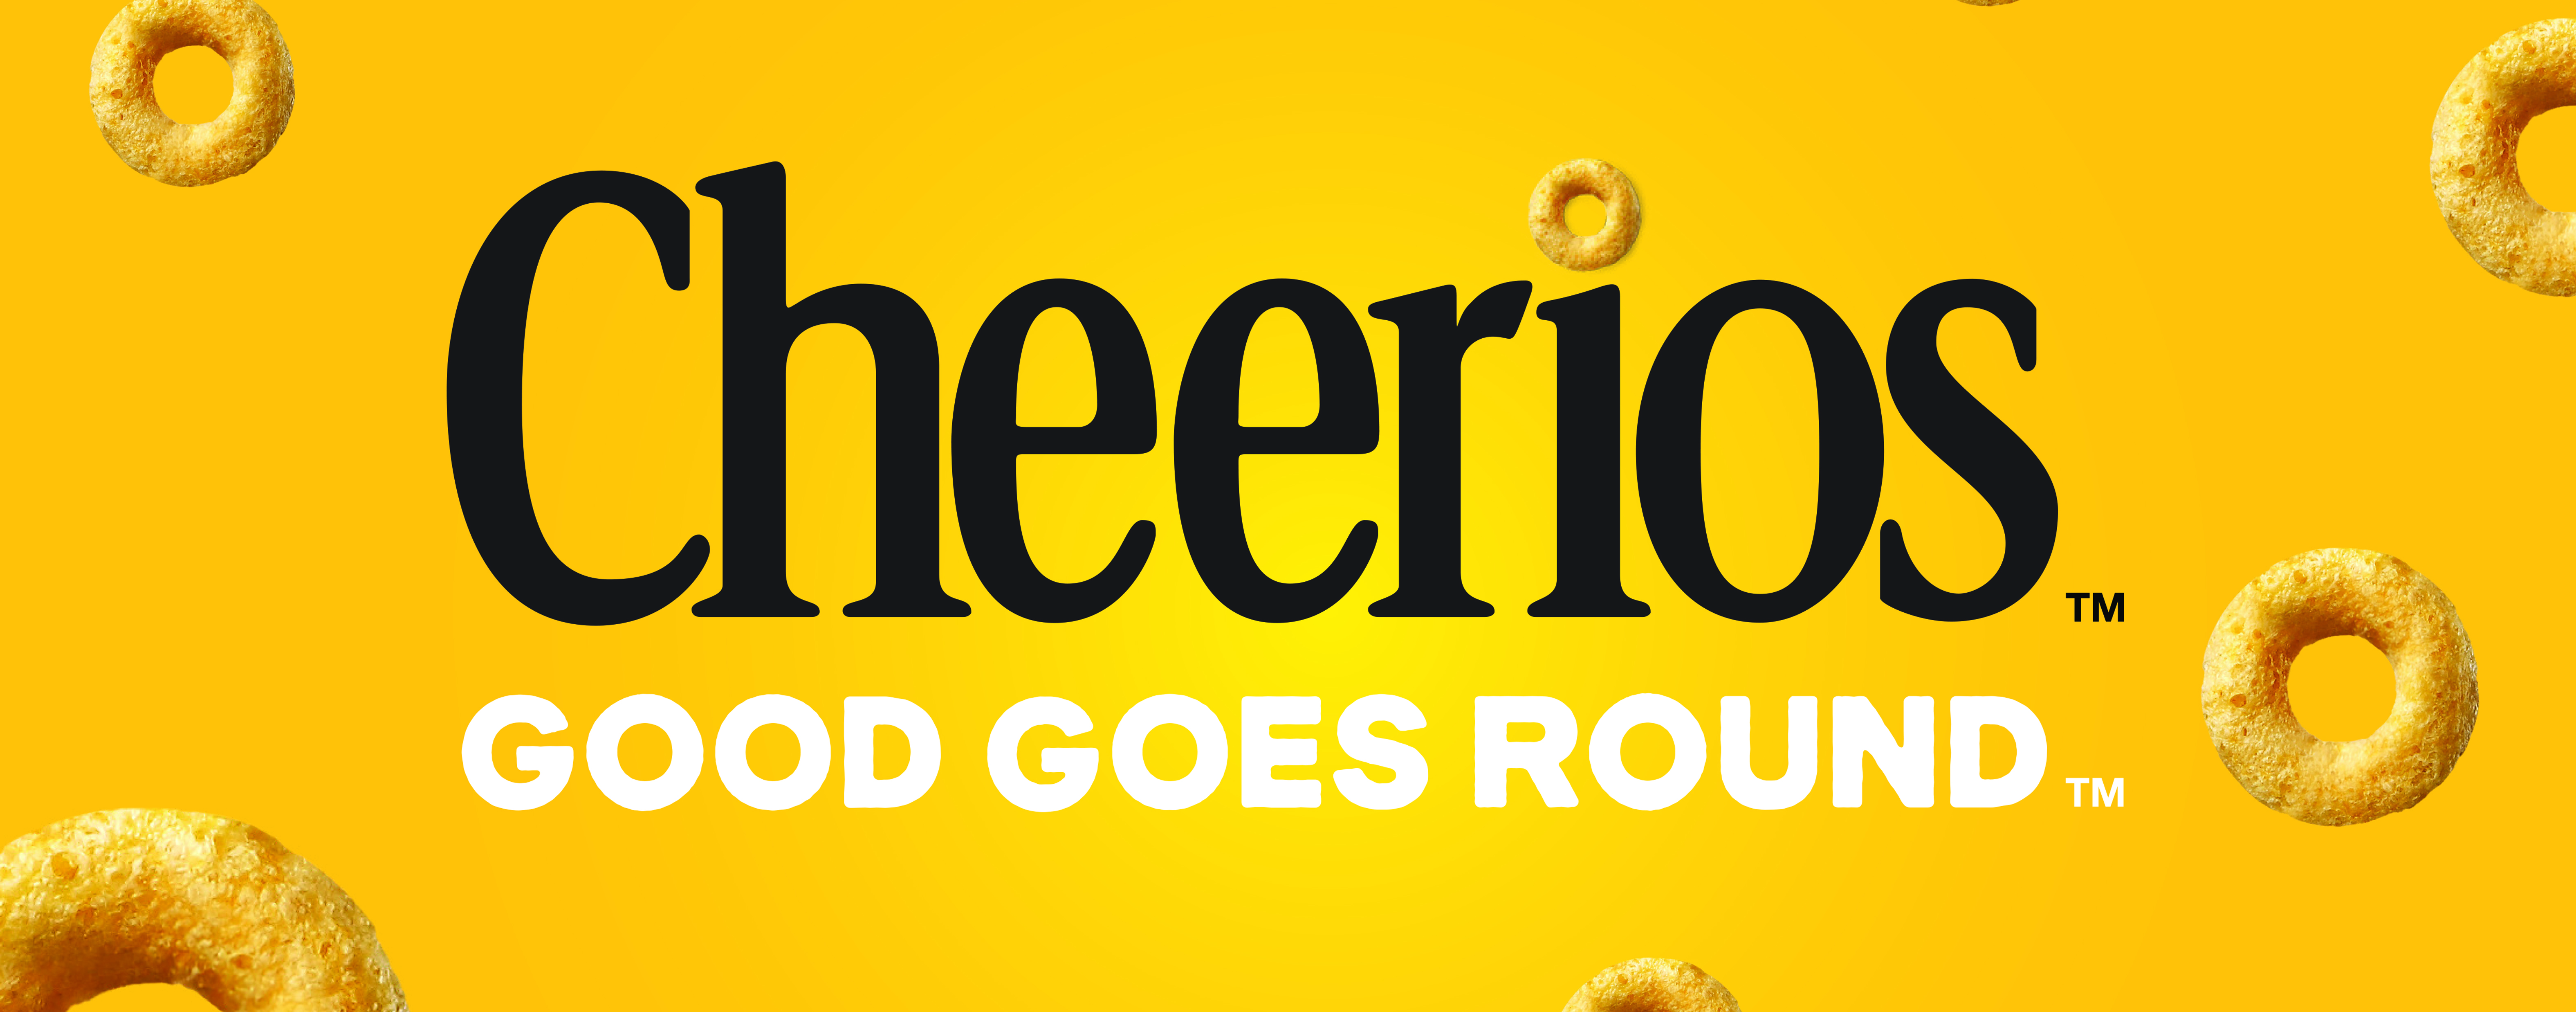 Cheerios Good Goes Round on Yellow background